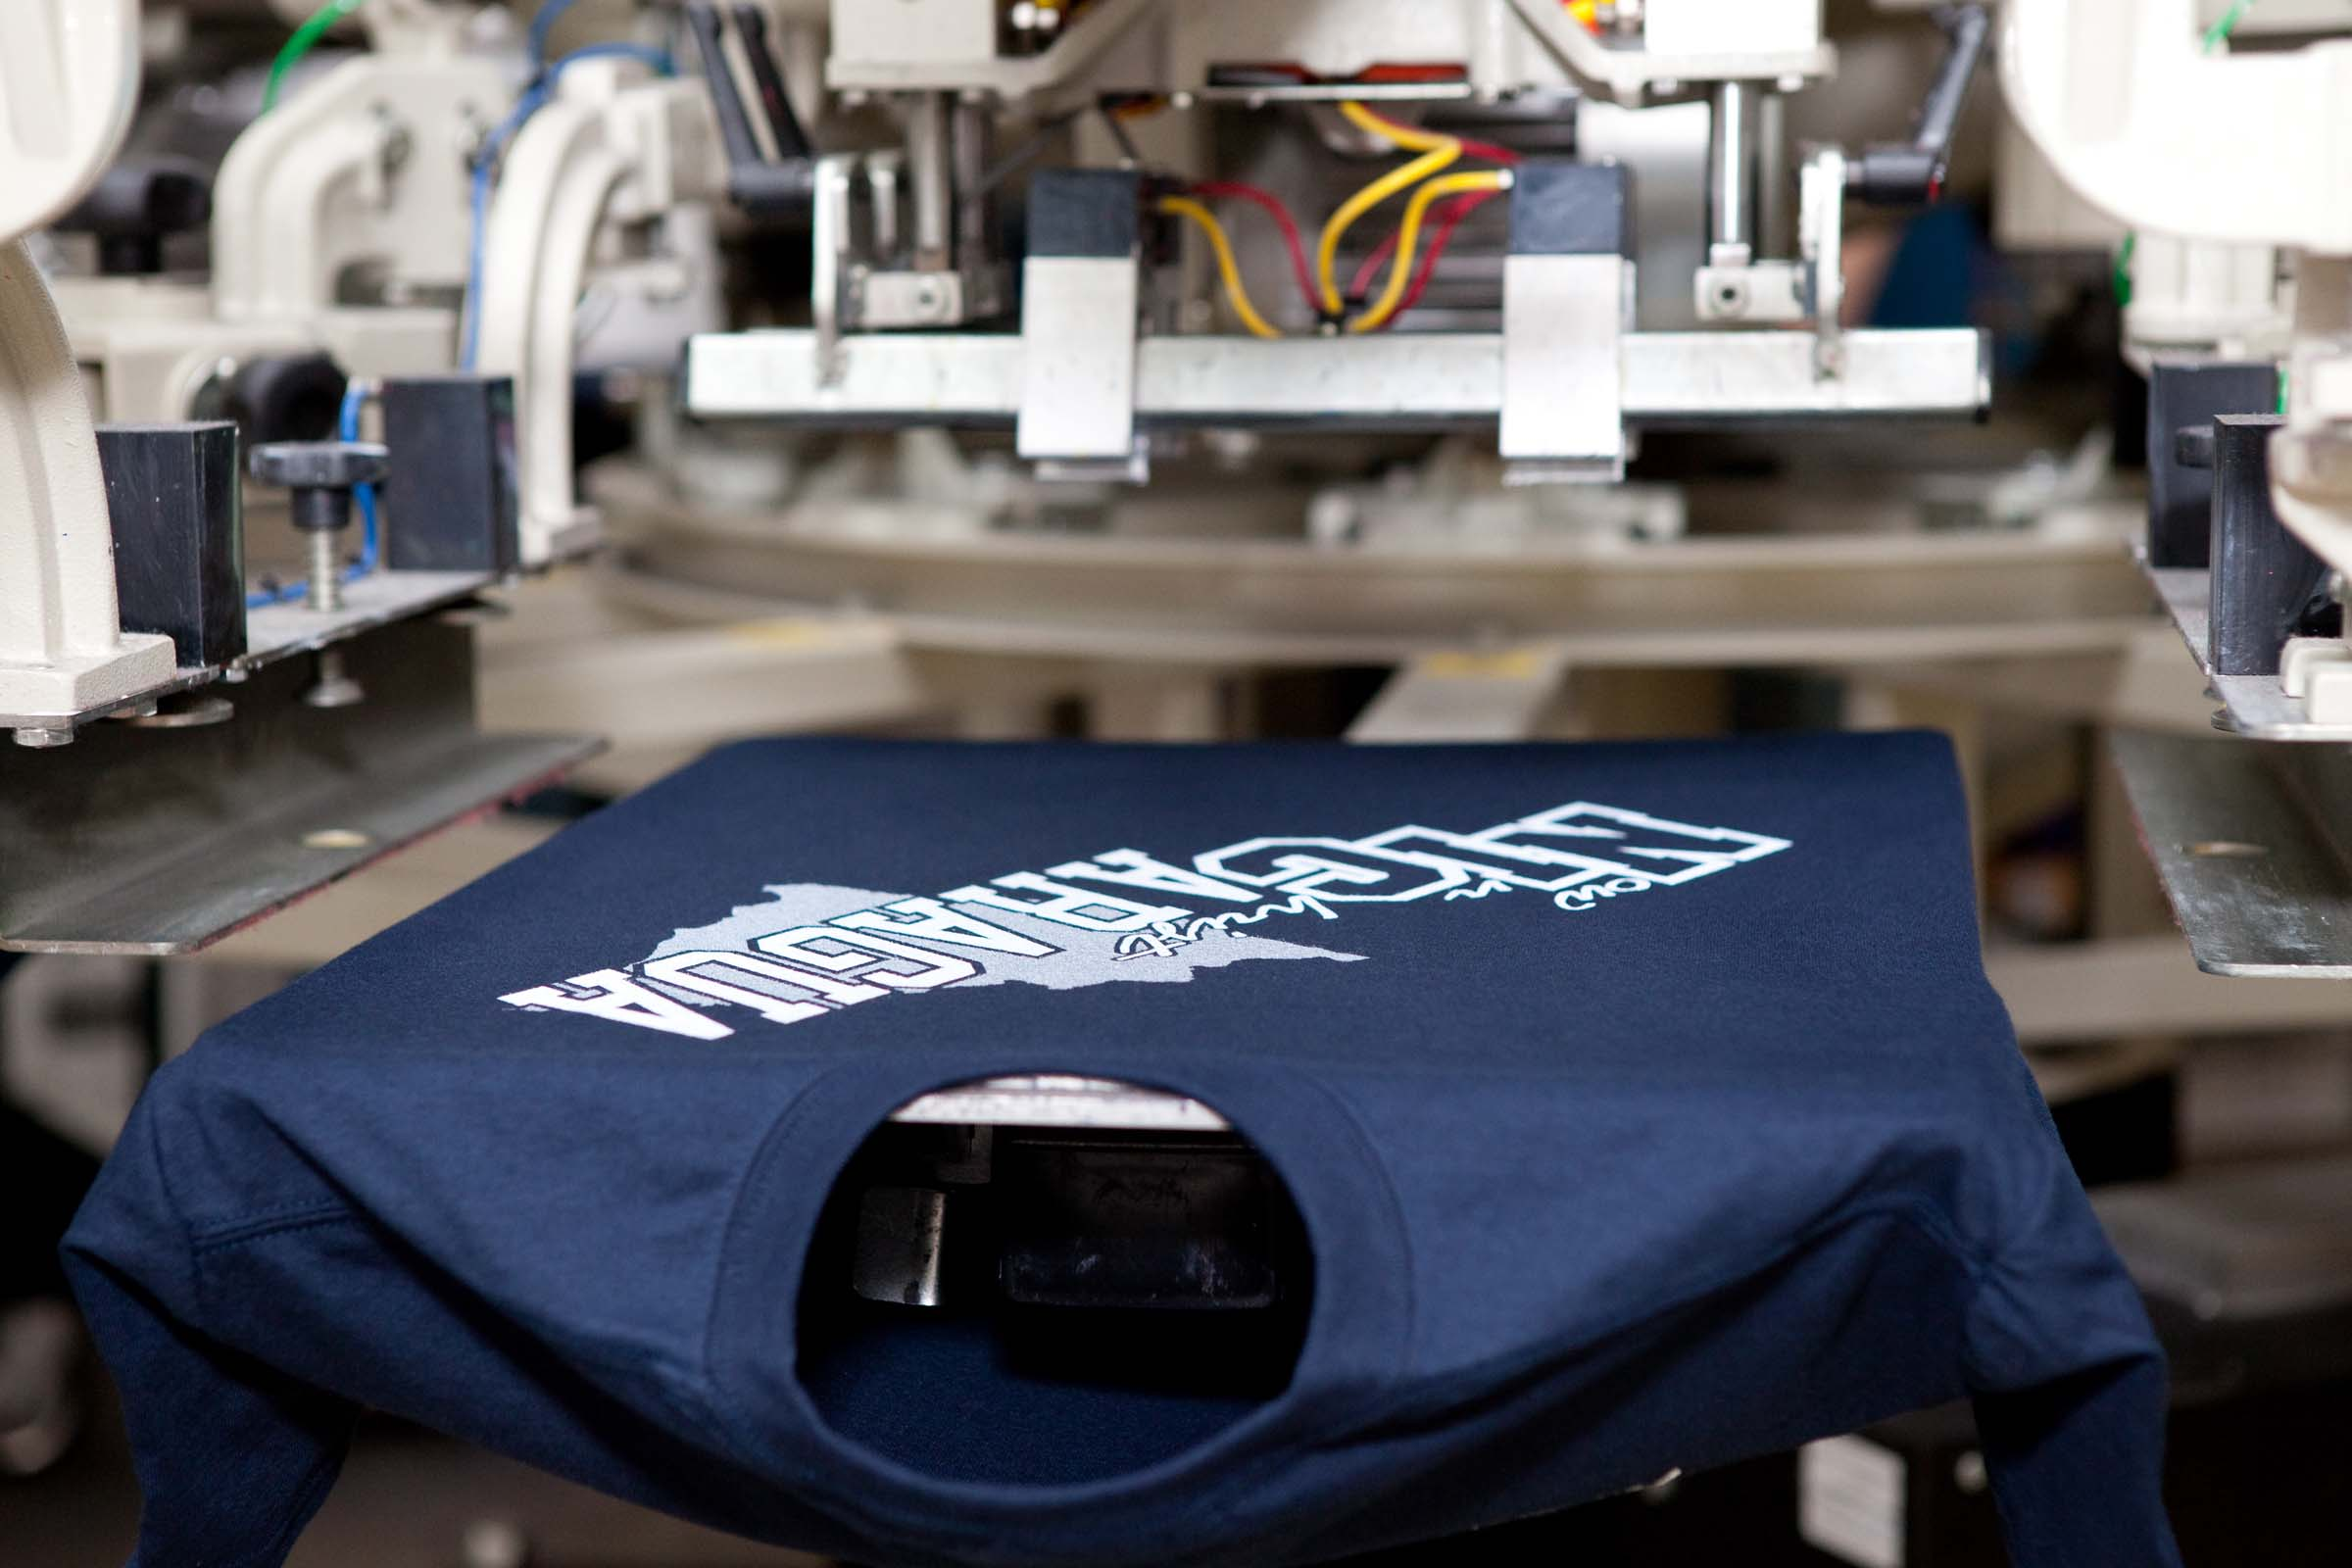 http://www.contractscreenprinting.biz/wp-content/uploads/2014/06/Wholesale-Screen-Printed-T-Shirts.jpg